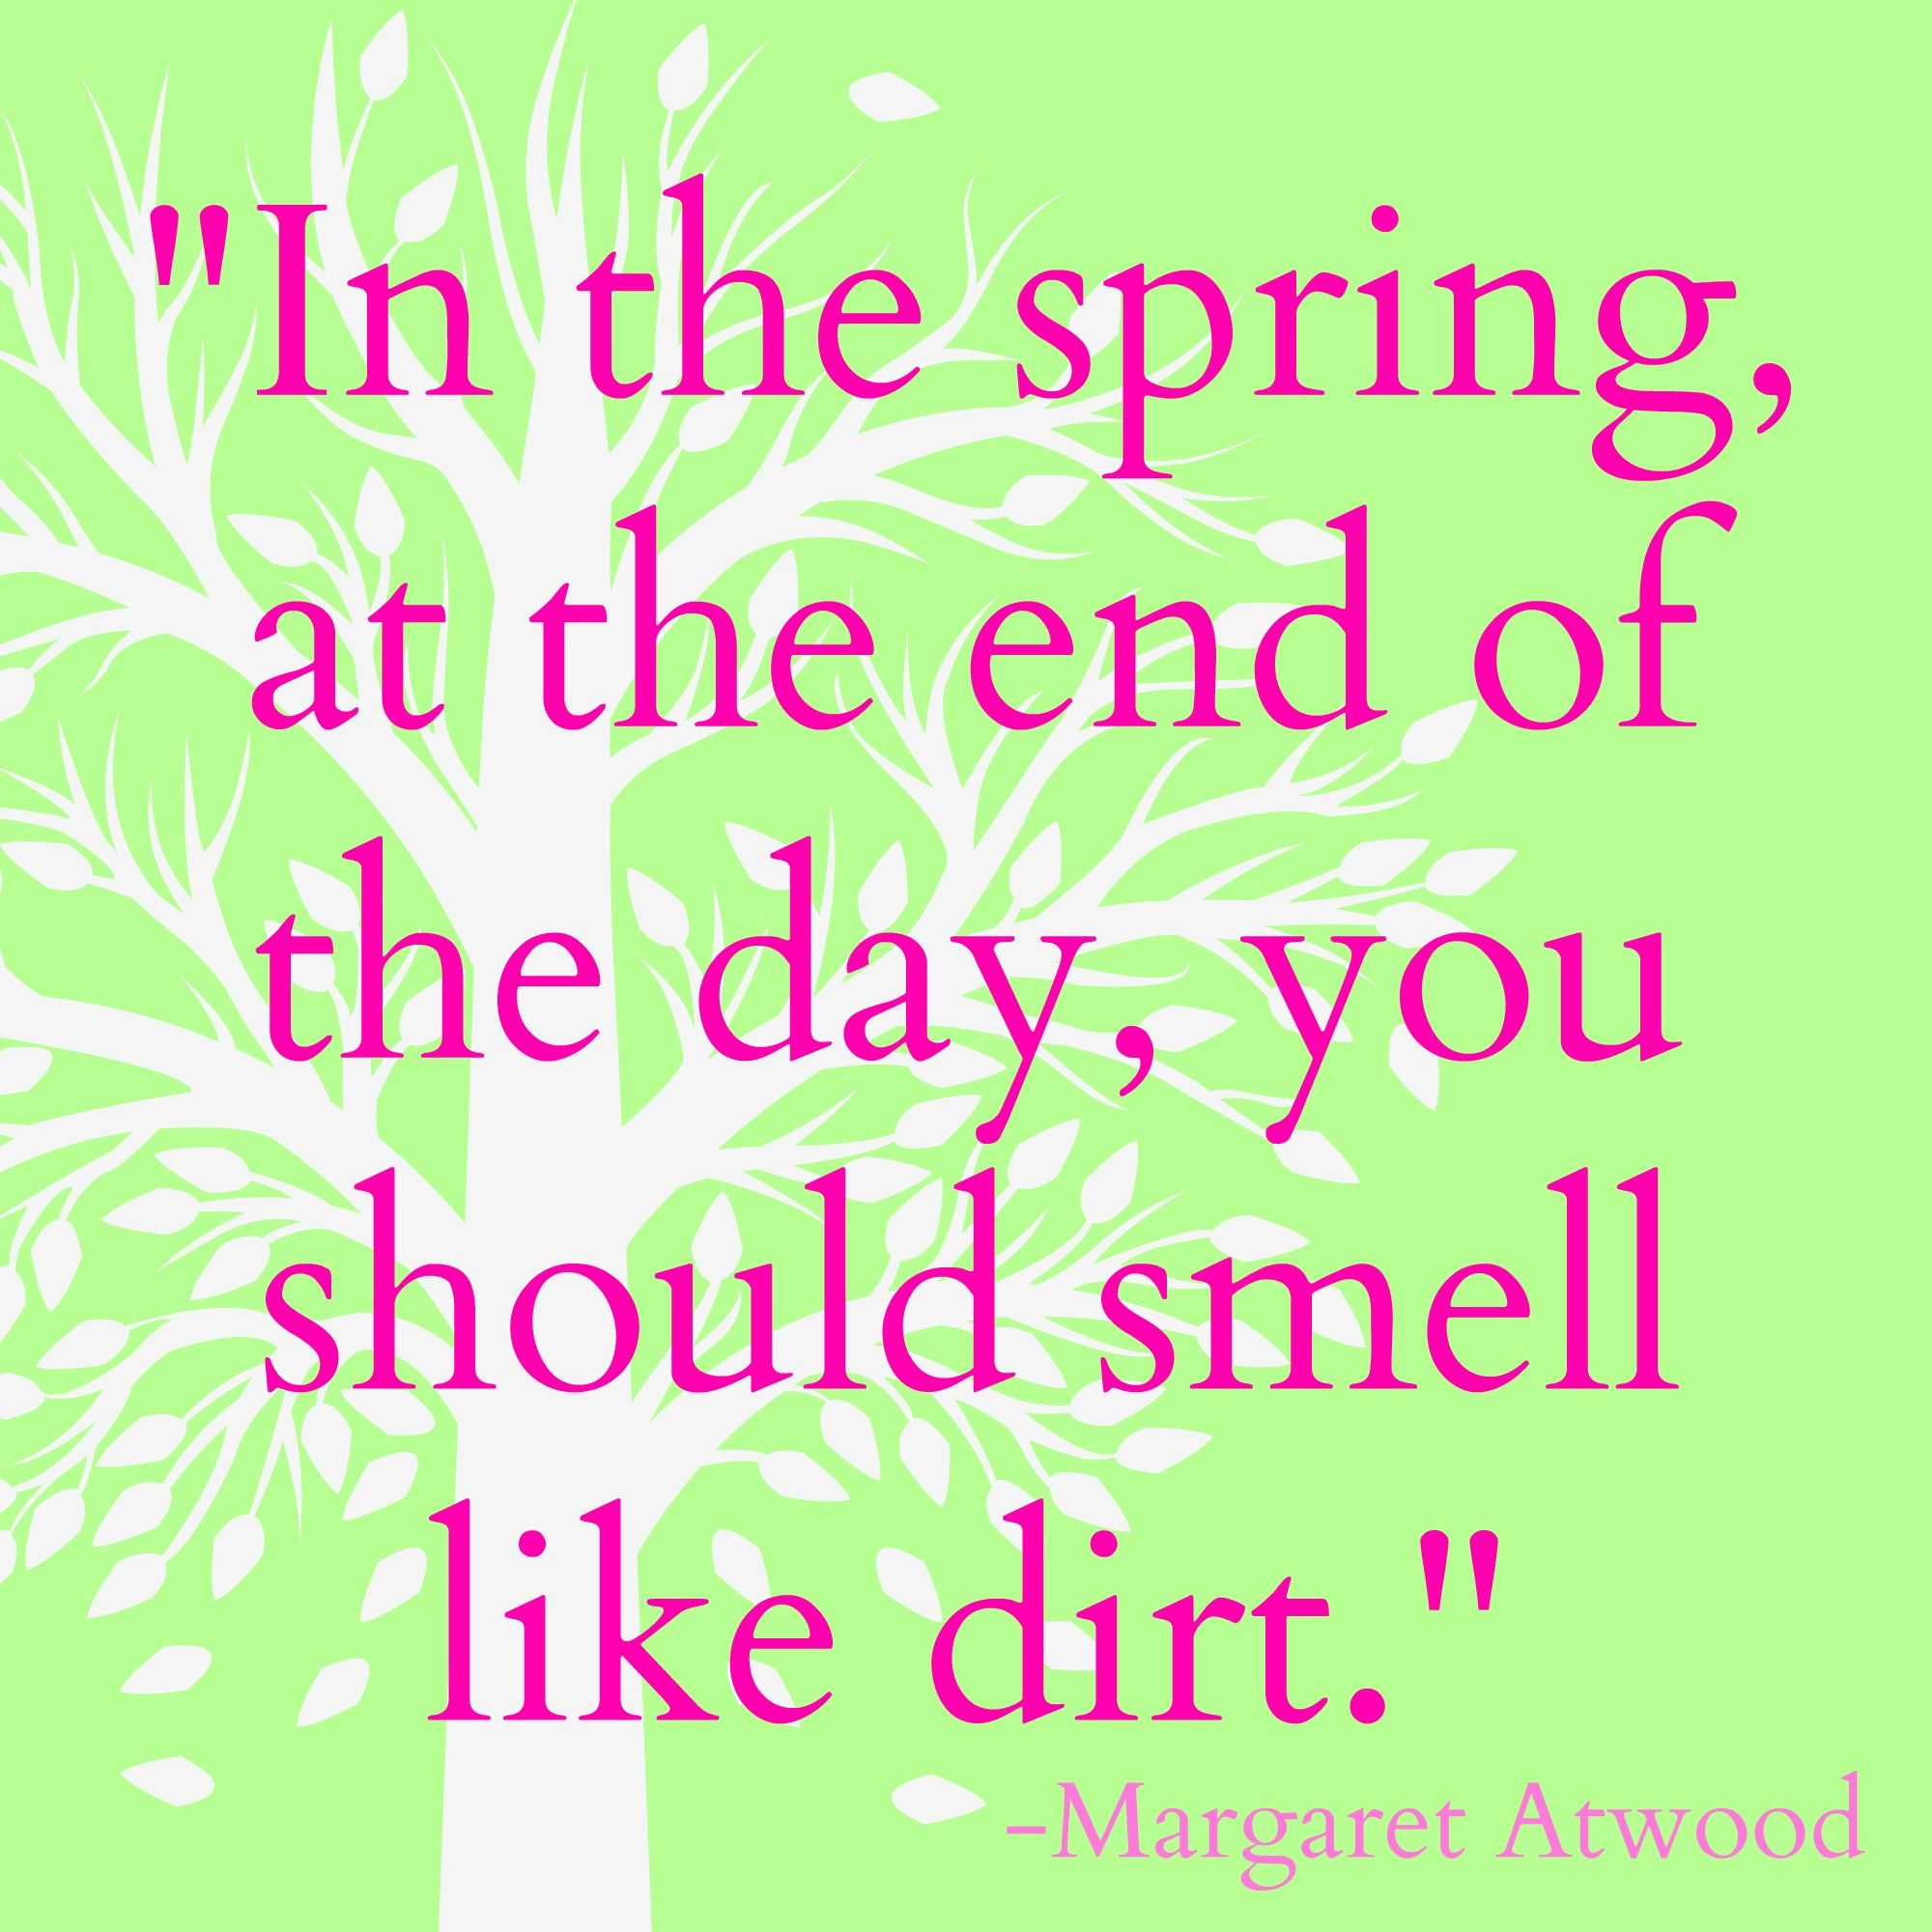 Spring When Will It Be Quotes Quotesgram Spring Quotes Hello Spring Quotes Spring Funny Quotes